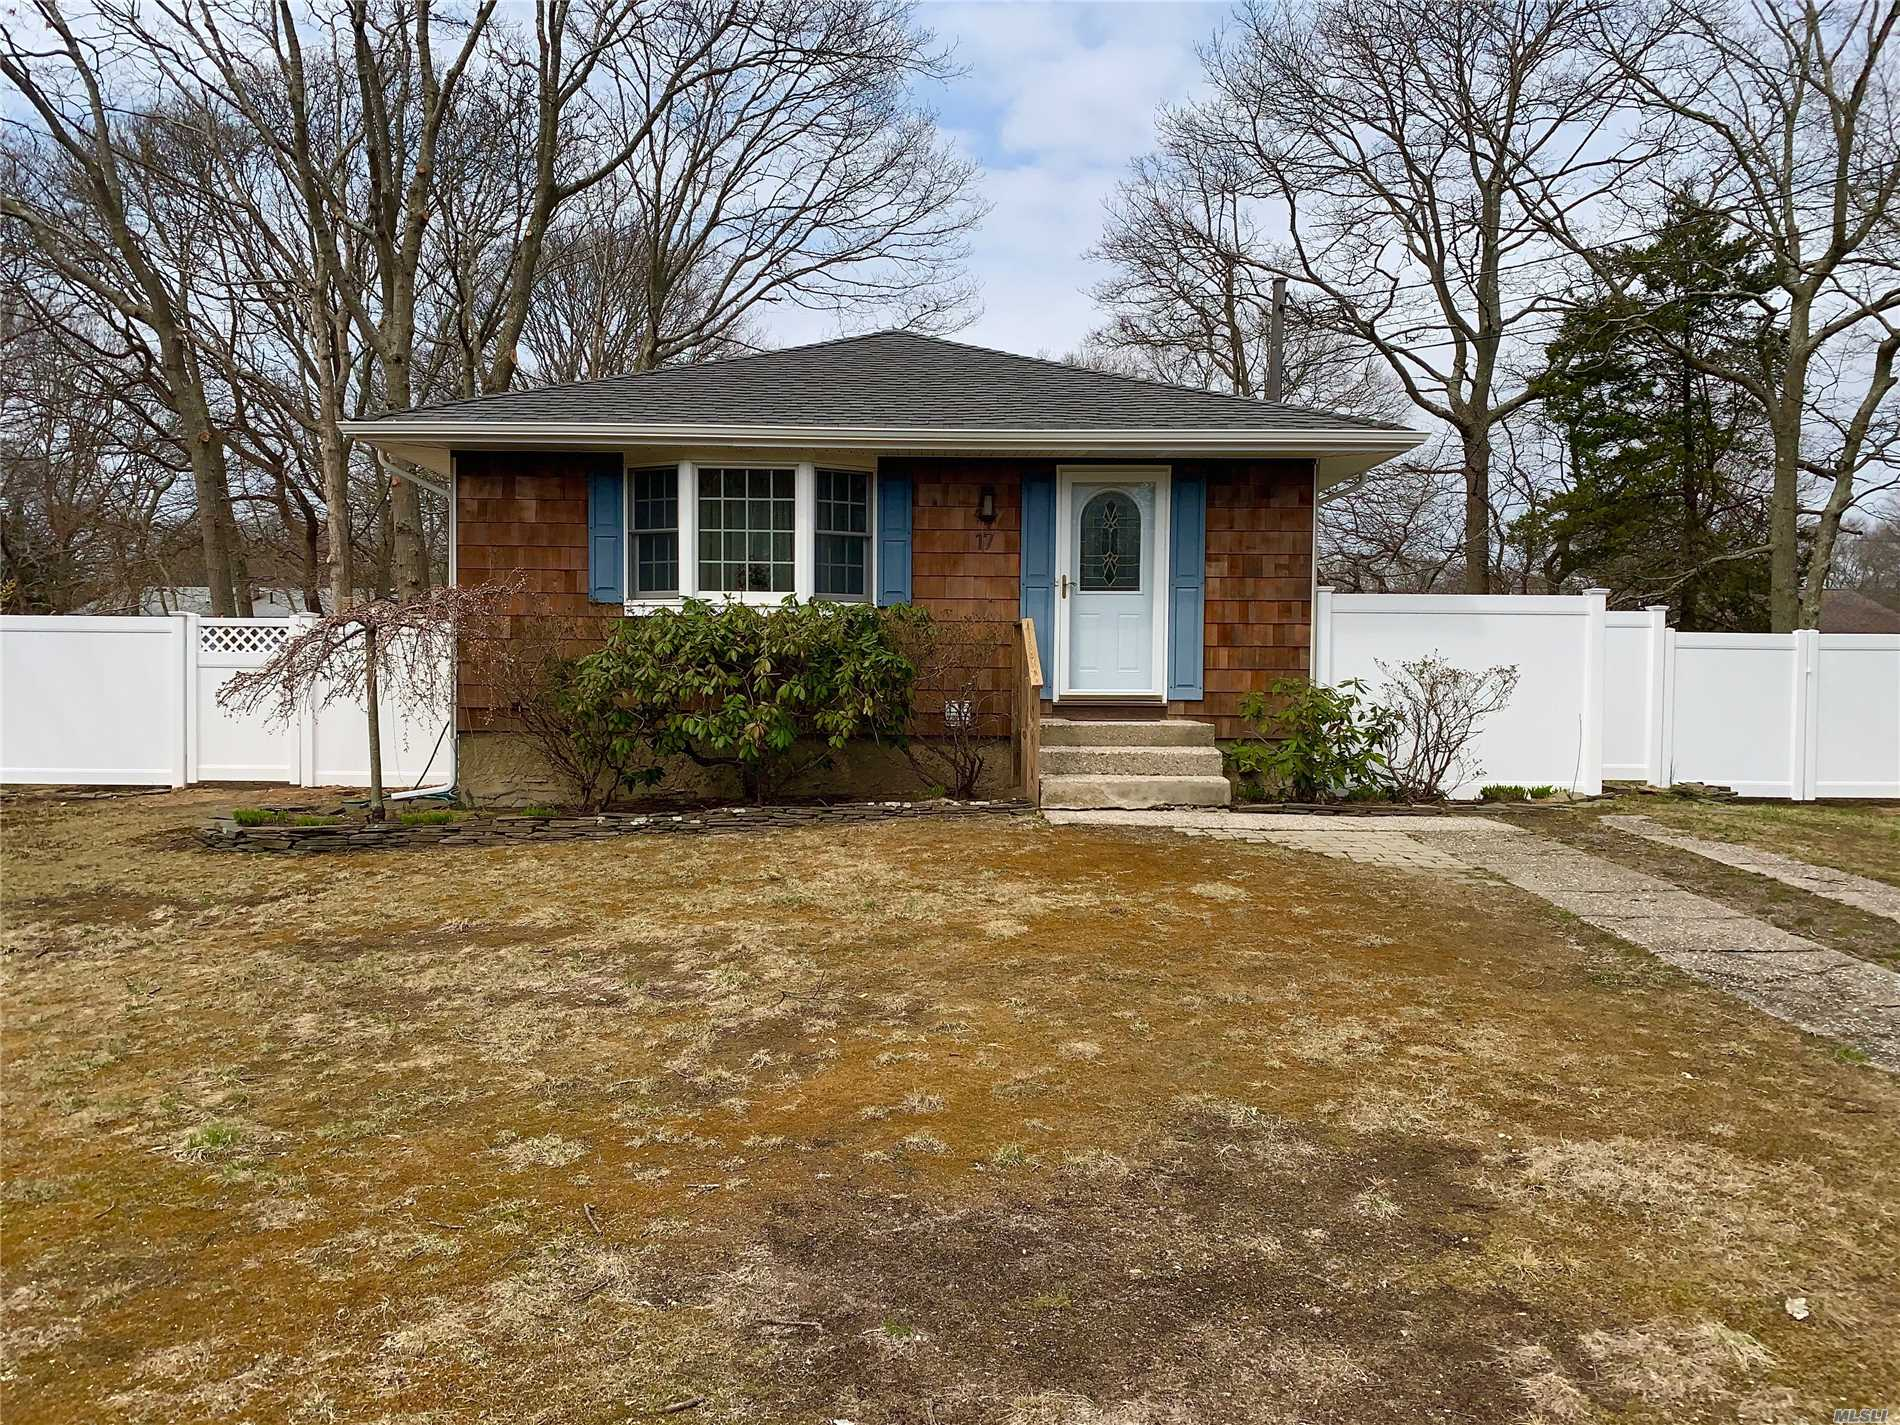 Mint 3 bedroom, 2 bath ranch with full finished basement. All hardwood floors, Basement has den, bedroom, full bath & storage & outside entrance. New PVC fencing, new siding, leaders, & gutters. Large fenced yard.